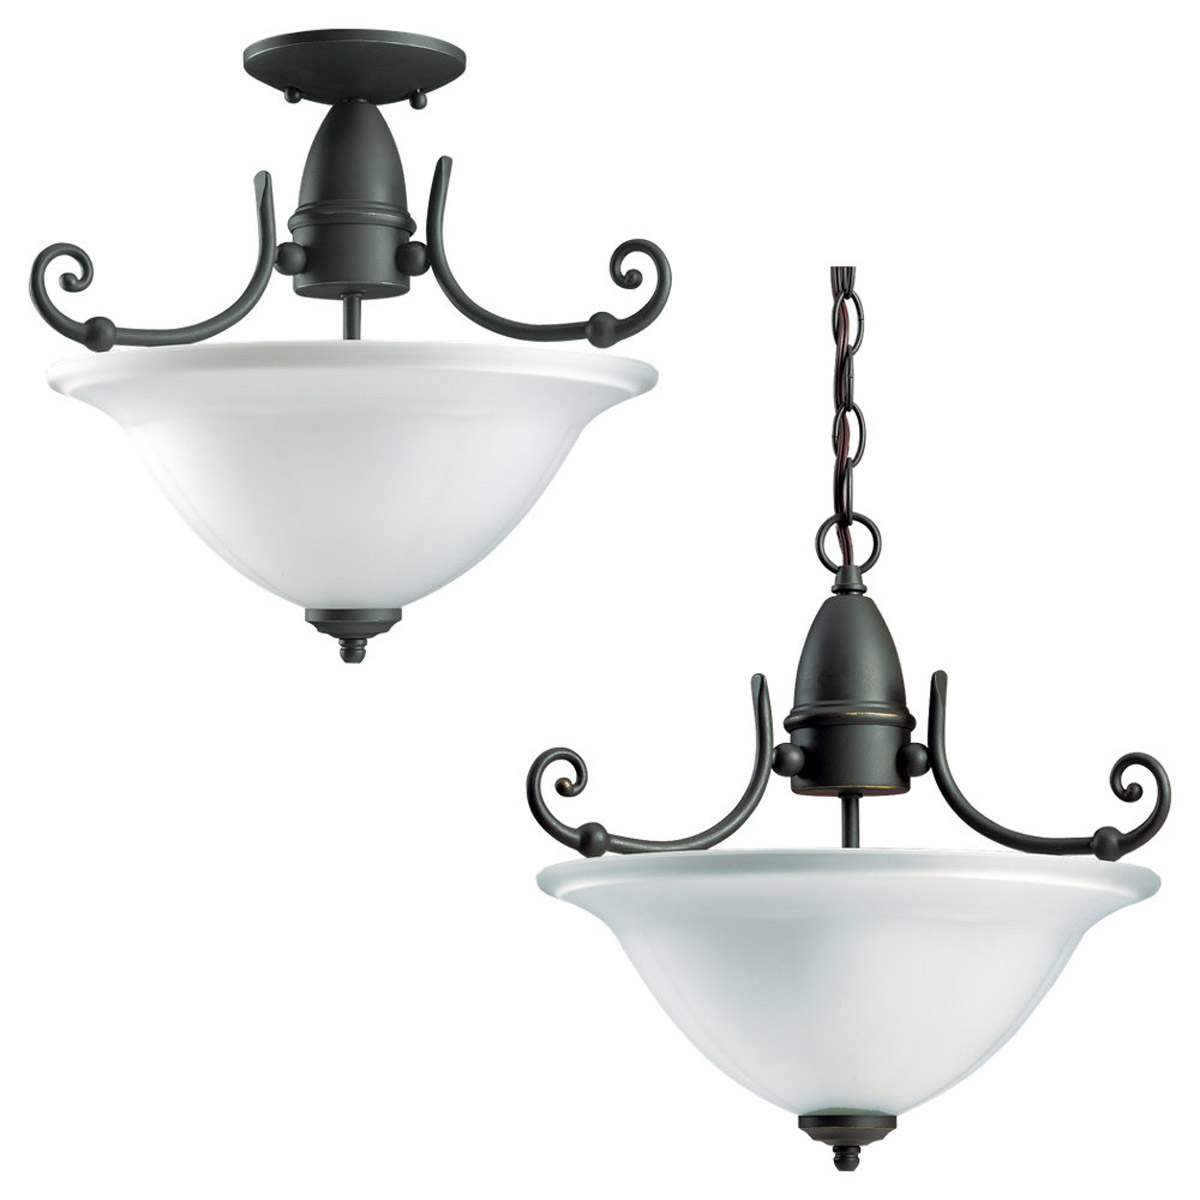 Sea Gull Lighting Canterbury 1 Light Fluorescent Ceiling in Antique Bronze 59050BLE-71